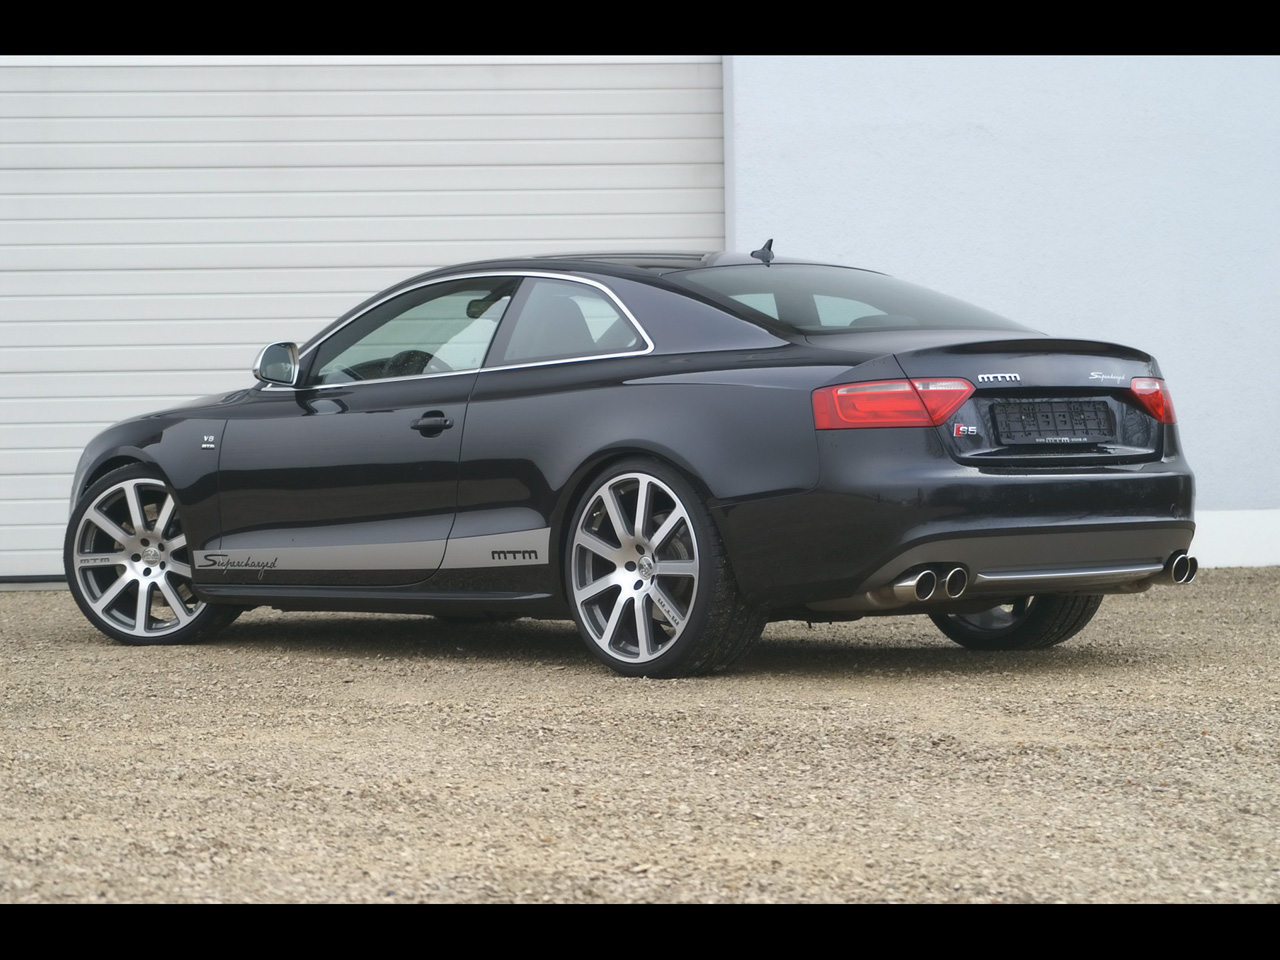 2008-MTM-Audi-S5-GT-Supercharged-Rear-And-Side-Low-View-1280x960.jpg